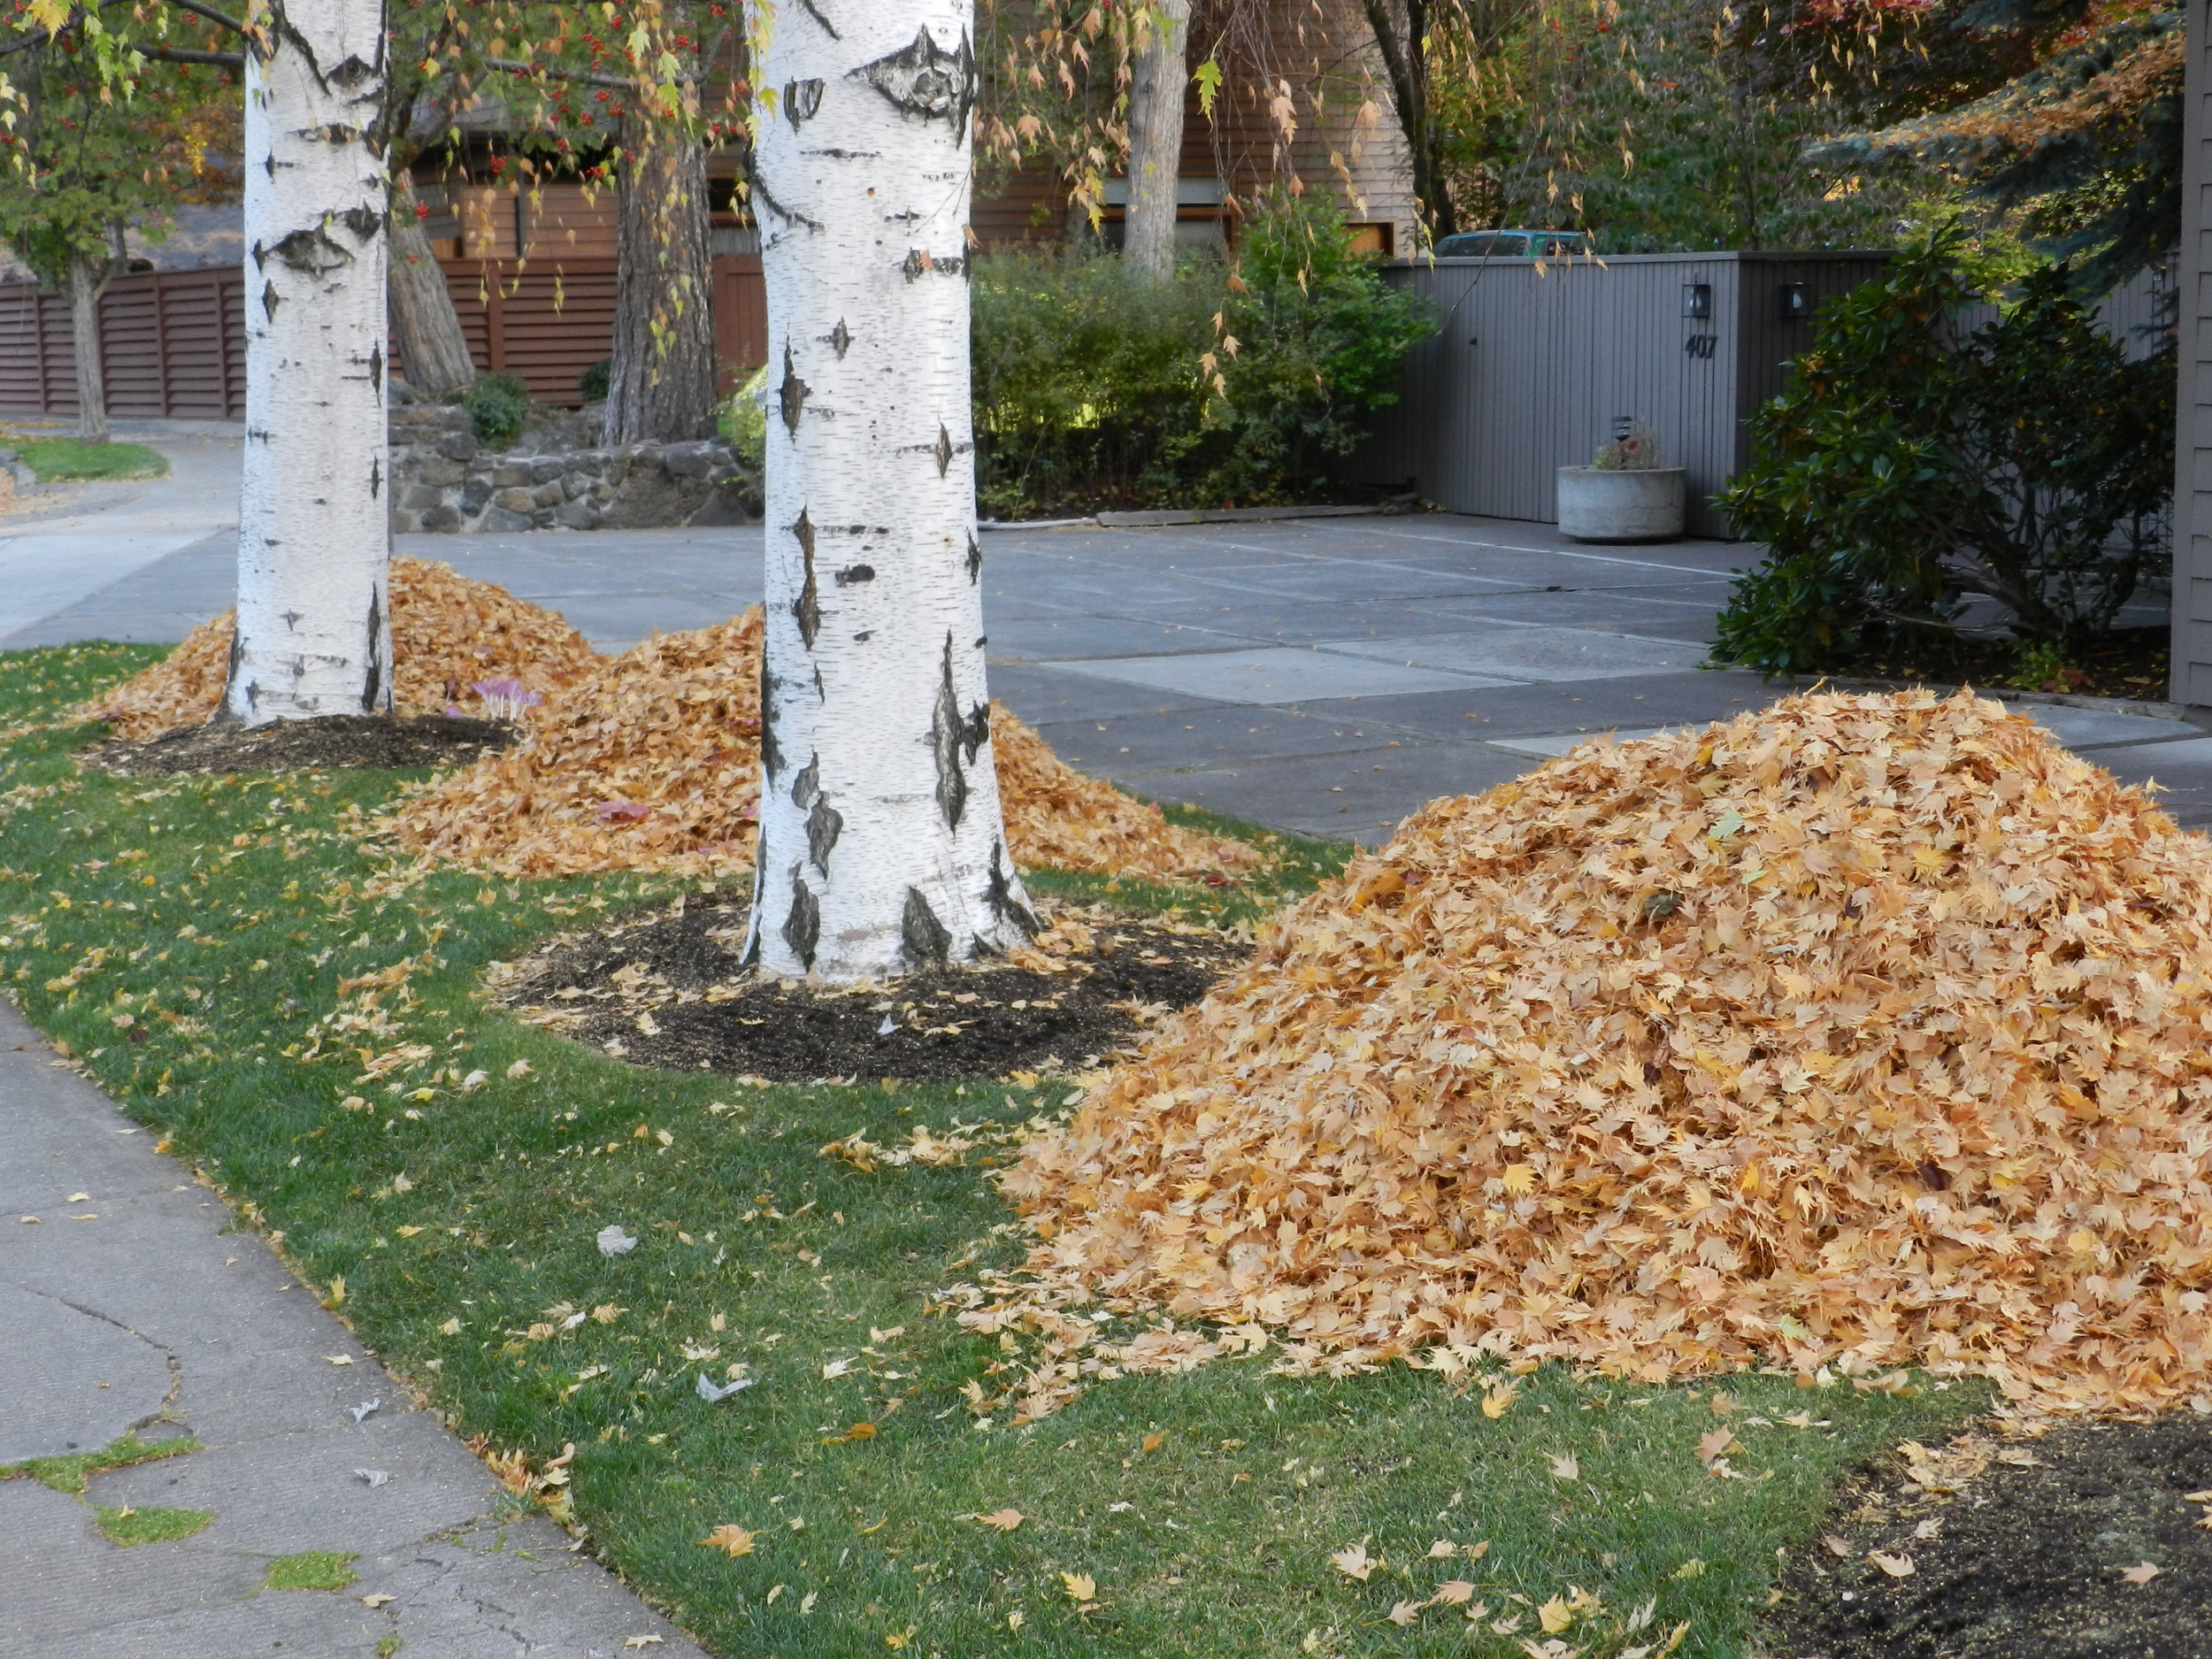 Fall means leaf piles